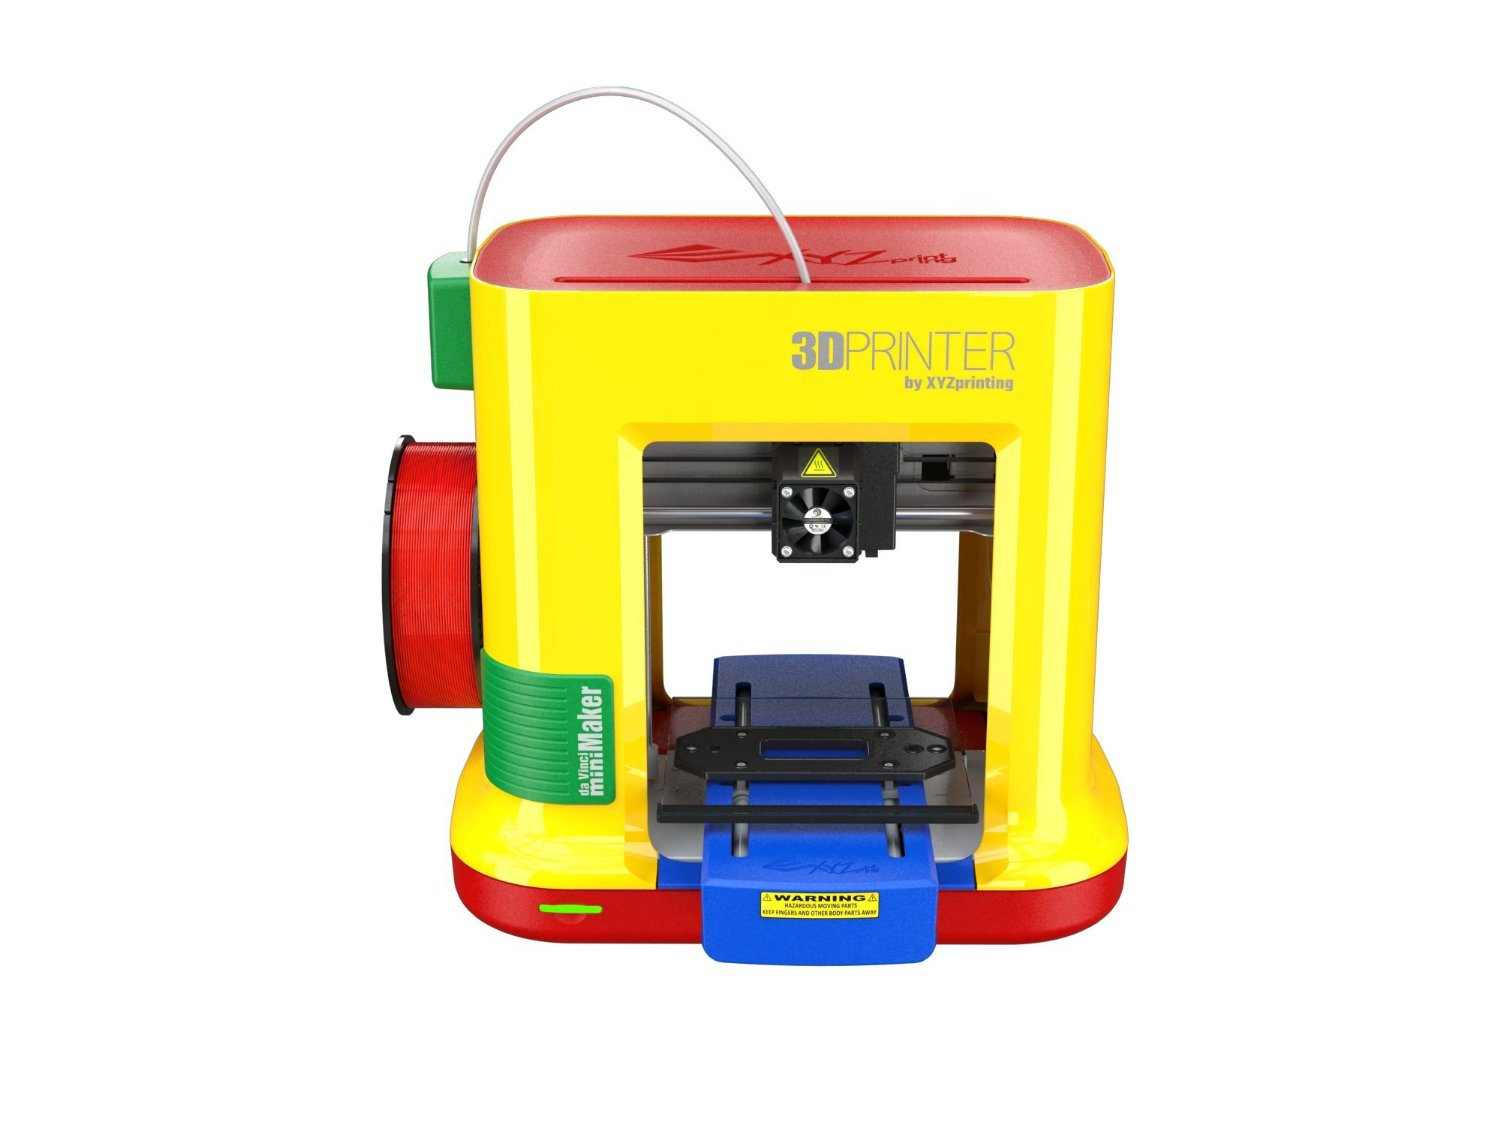 XYZPrinting's MiniMaker Could Make Things Tough For Many Small 3D Printer Manufacturers